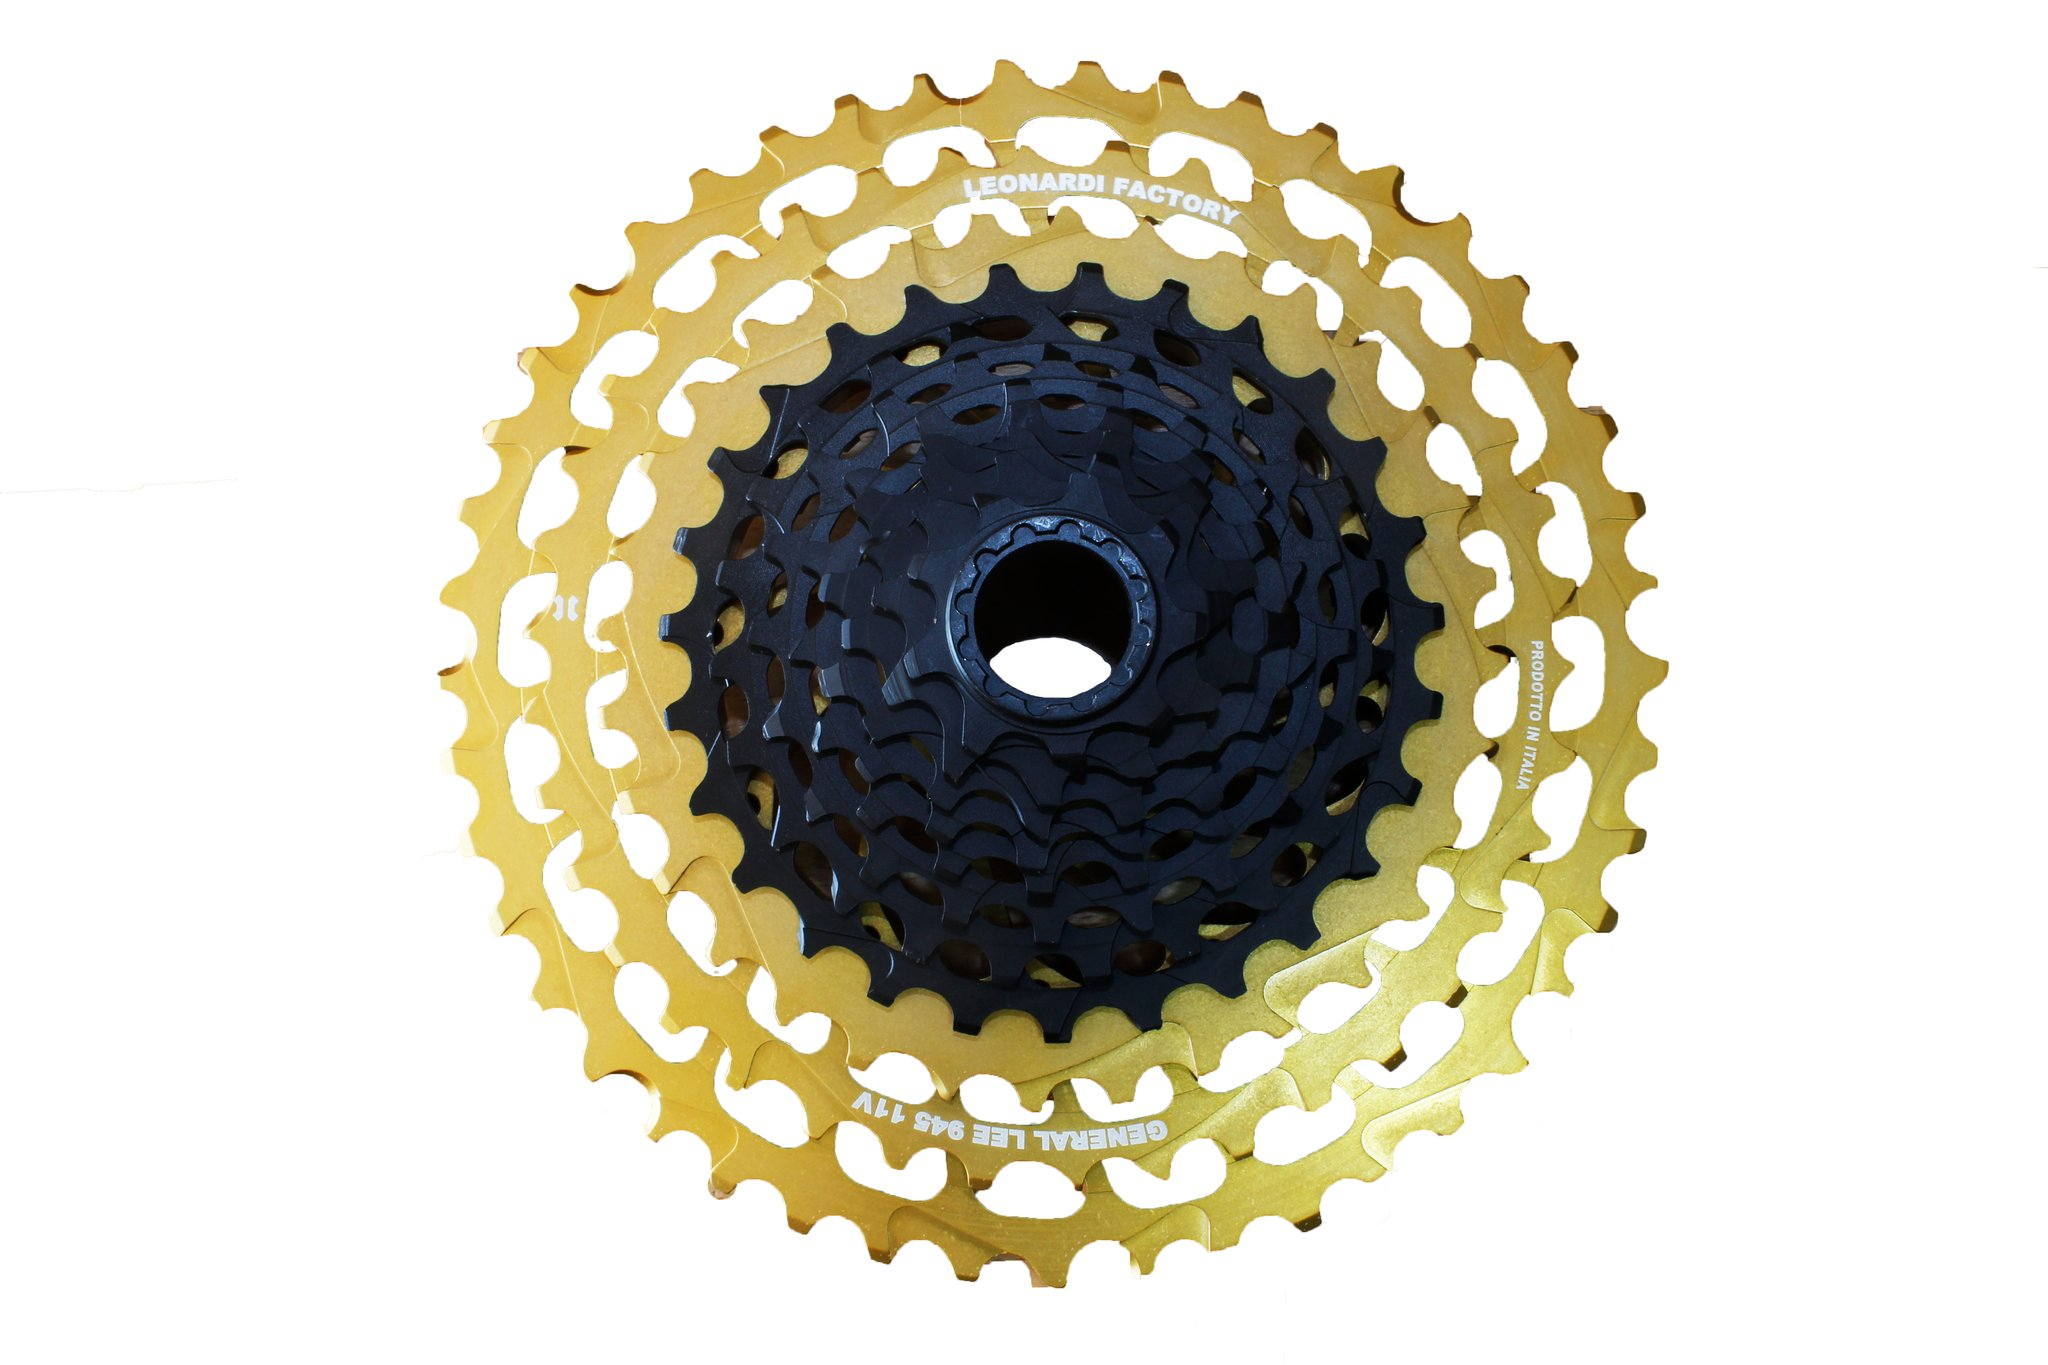 Leonardi Factory General Lee 945 V11 - 11 Speed Cassette Black/Gold THUMBNAIL